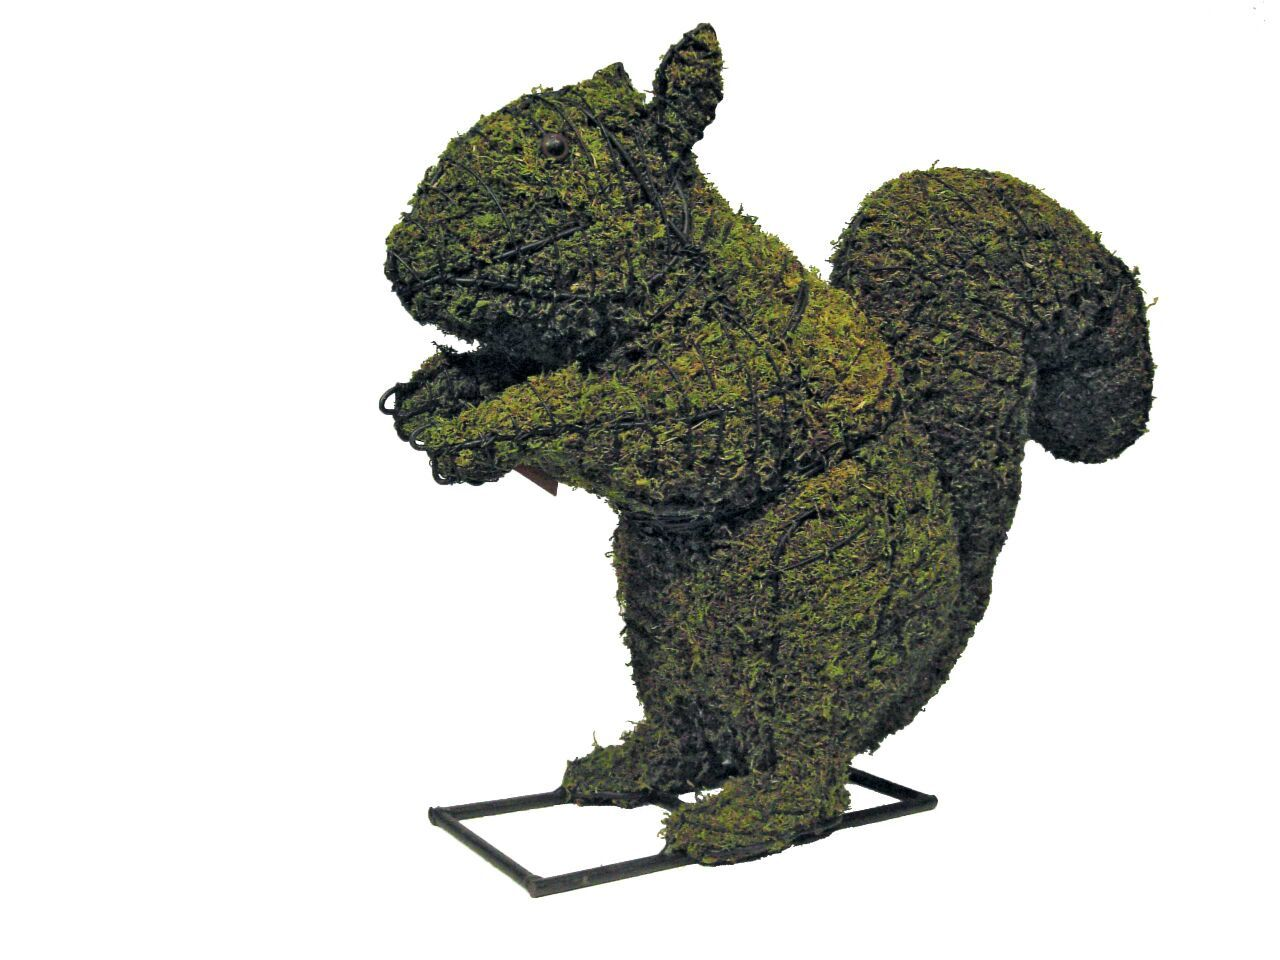 Squirrel steel topiary frame filled with green dyed sphagnum moss - Henderson Garden Supply